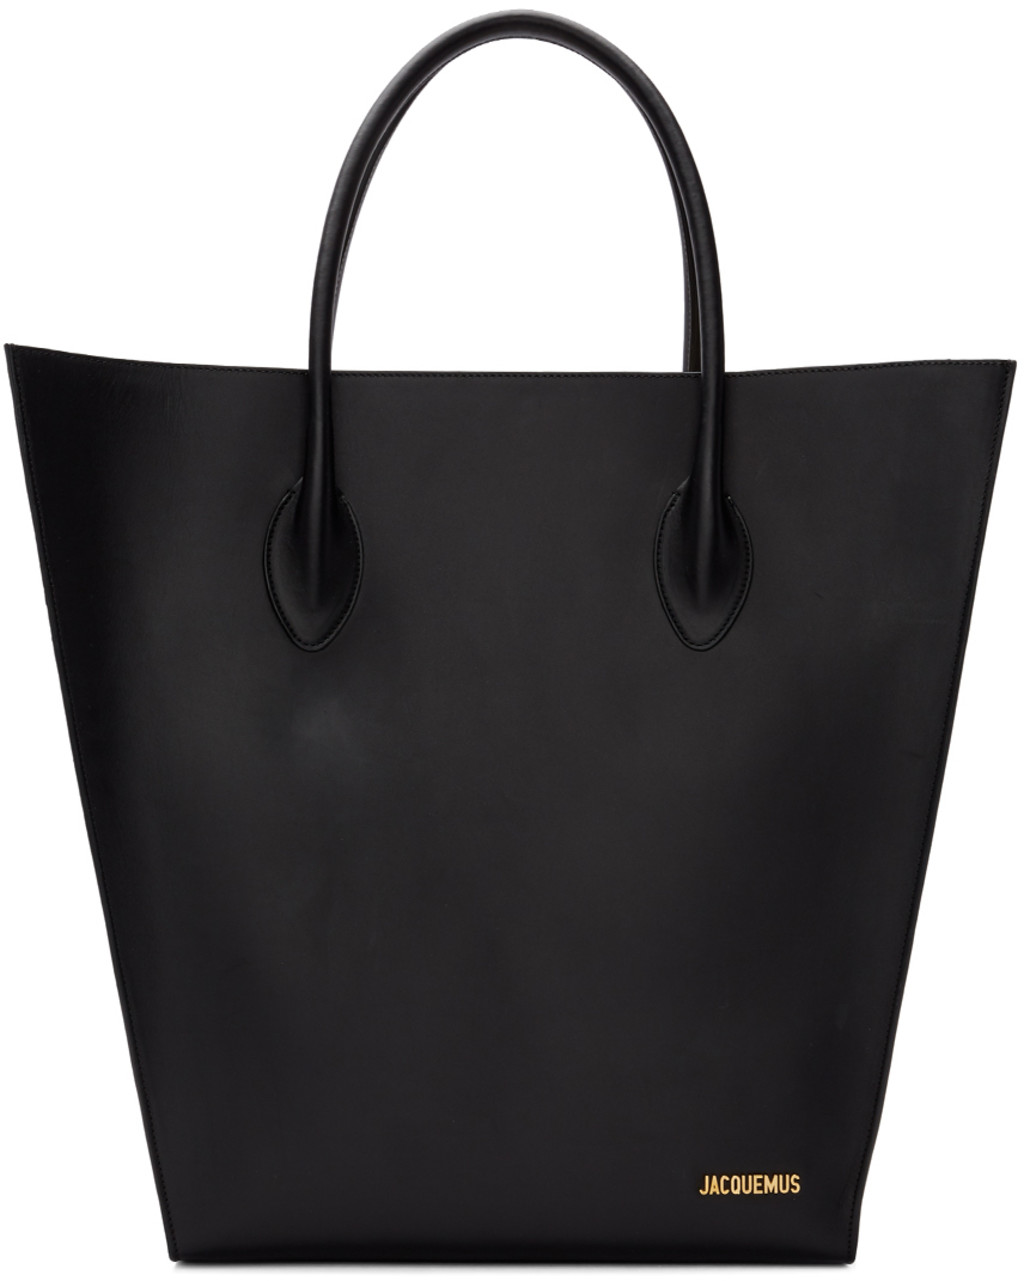 Jacquemus bags for Women  f455001f74619